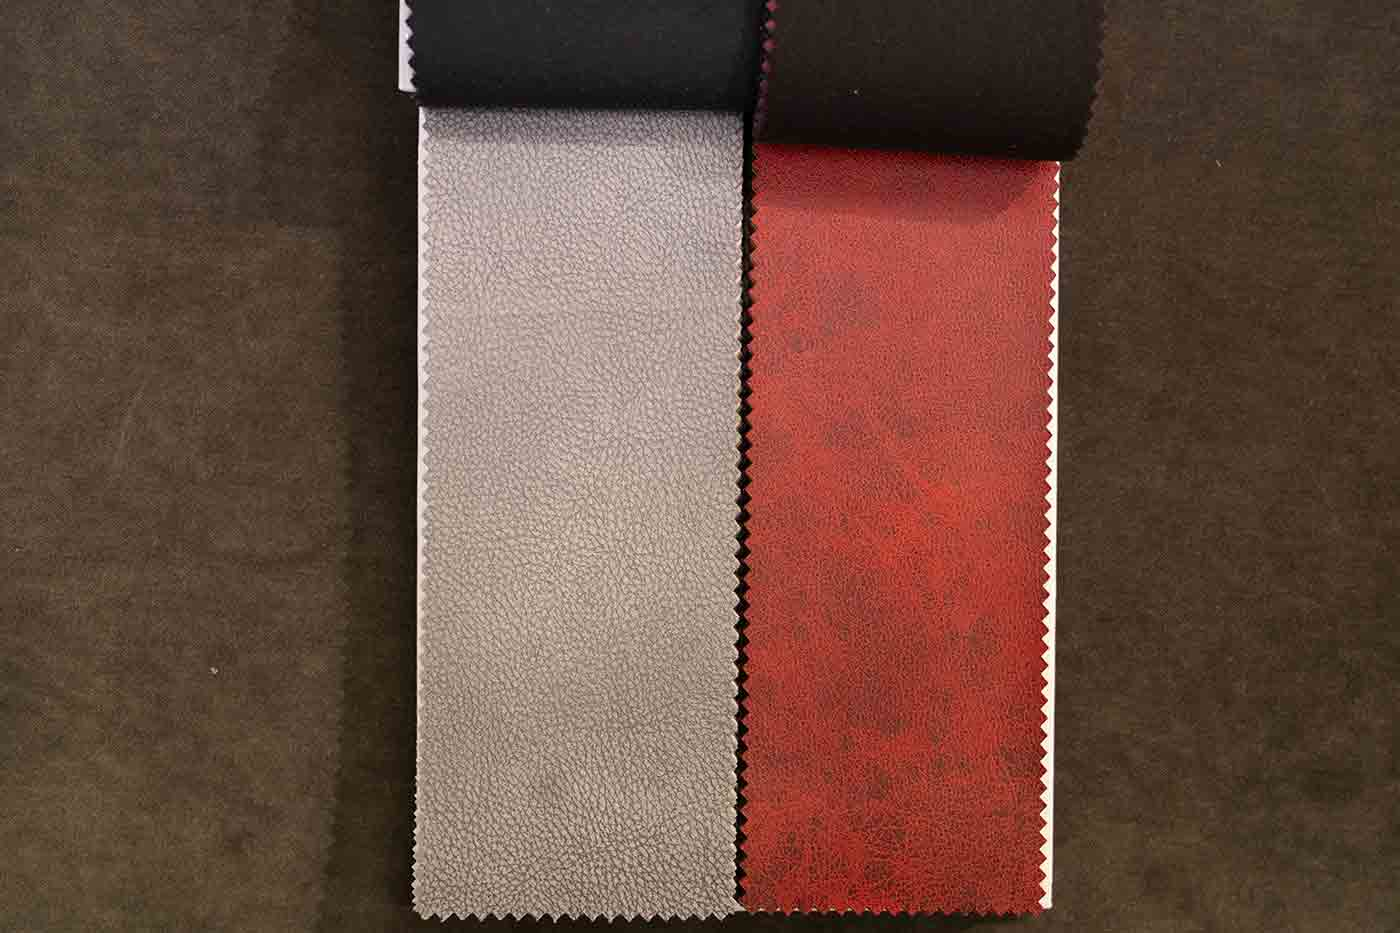 faux leather swatches in red and grey at Calico Corners in Pasadena sold as upholstery fabric